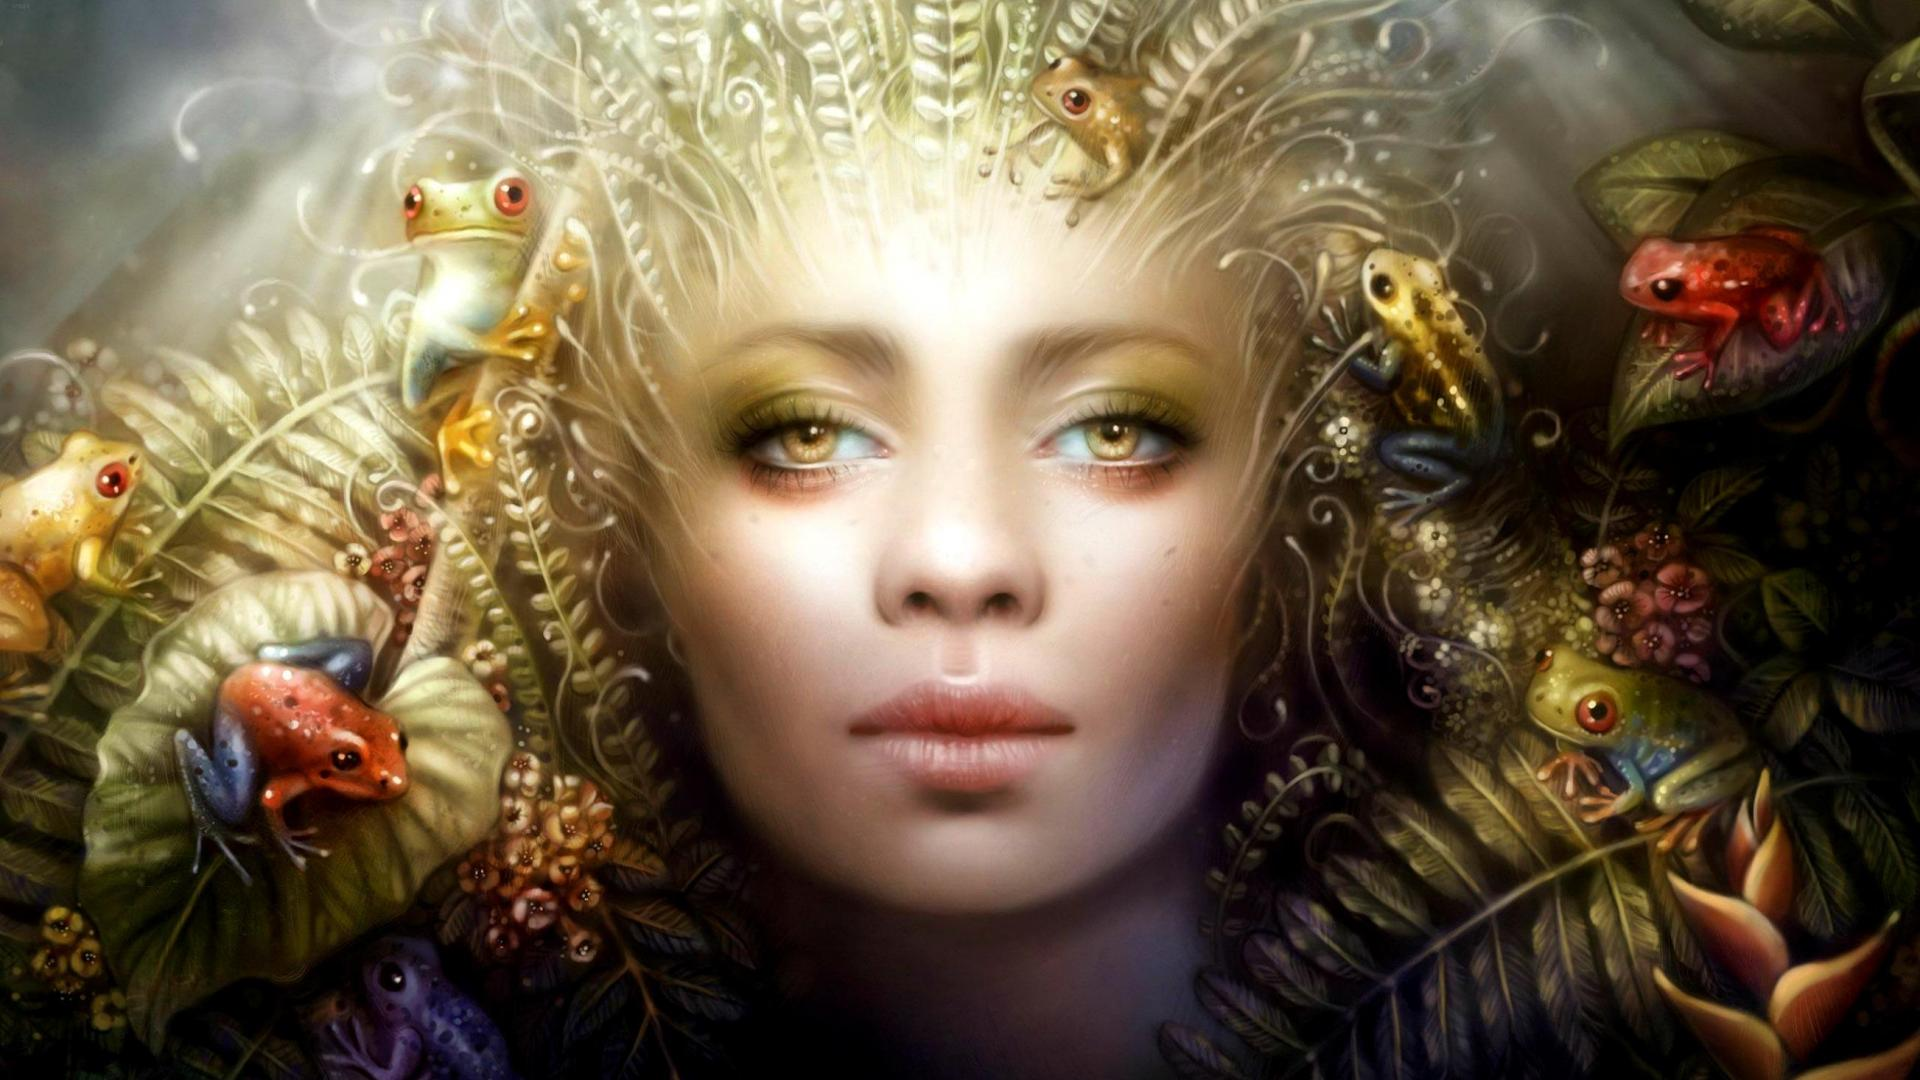 witch-queen-toads-frogs-medusa-greek-myths-crown-woman-dark-1920x1080